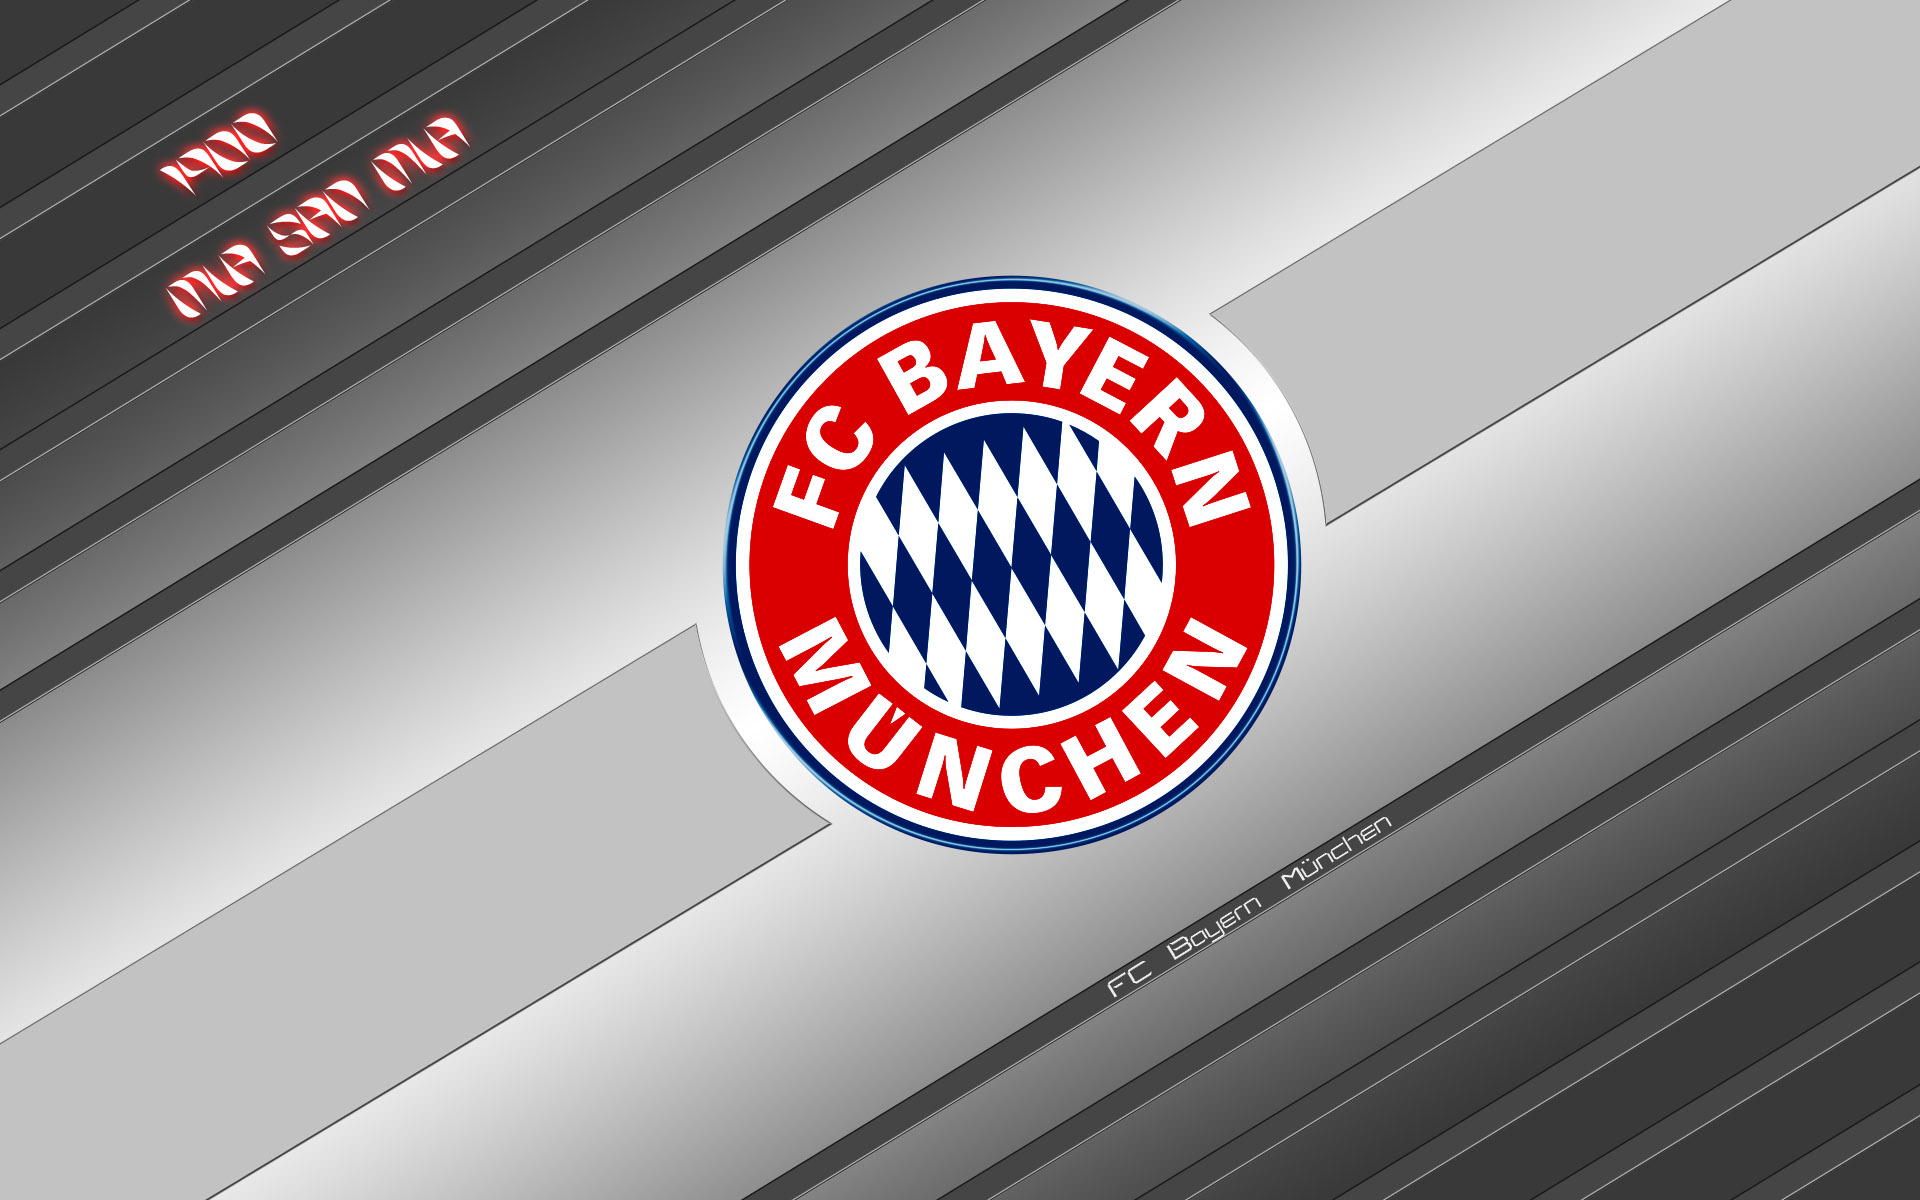 Fc bayern wallpaper hd android background photos england cricket fc bayern wallpaper hd android background vijay new movie kathi images of christmas voltagebd Images